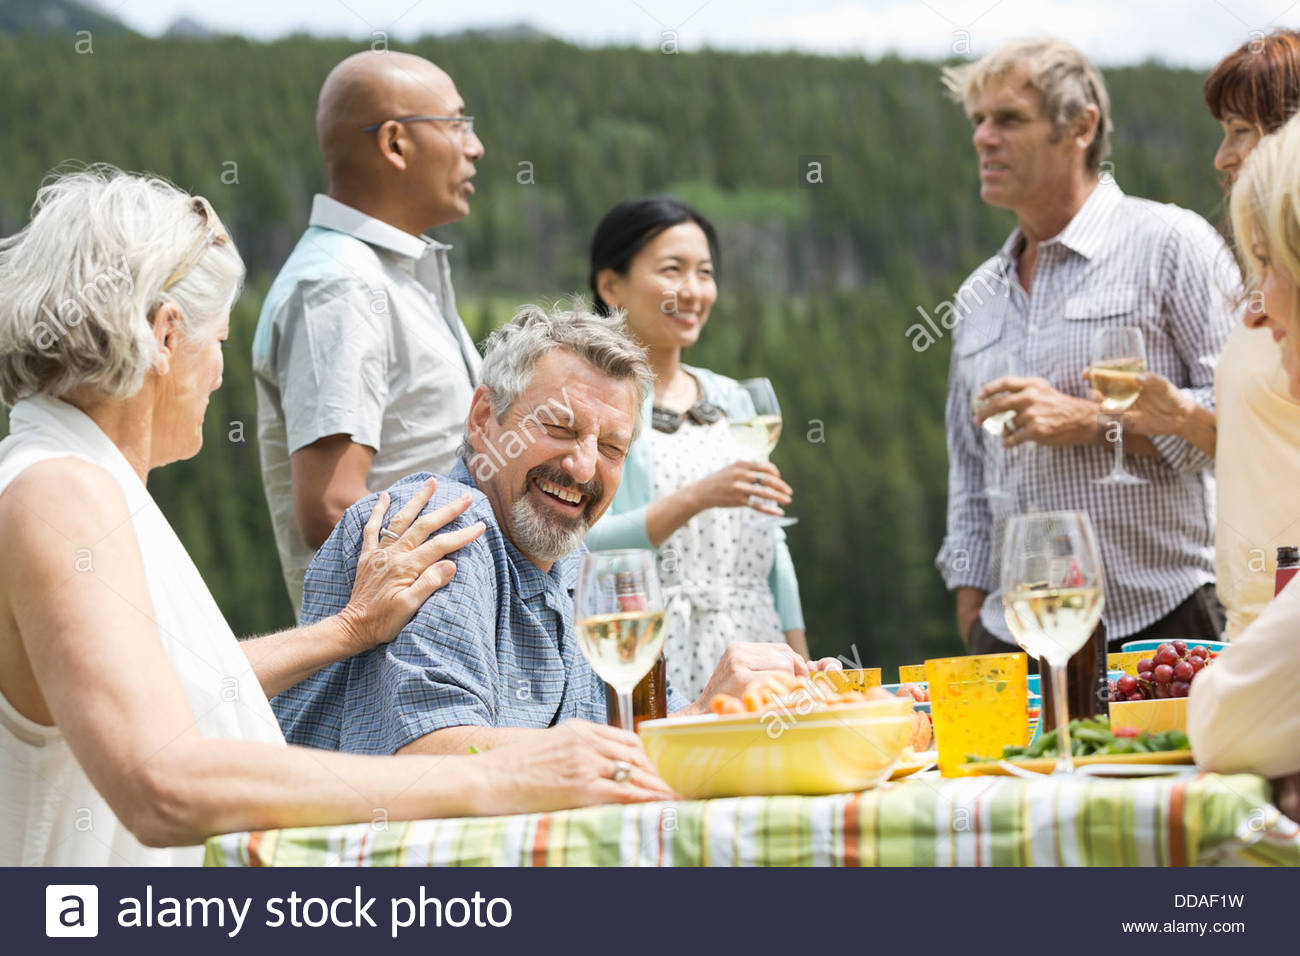 Mature couple goofing around at an outdoor picnic - Stock Image